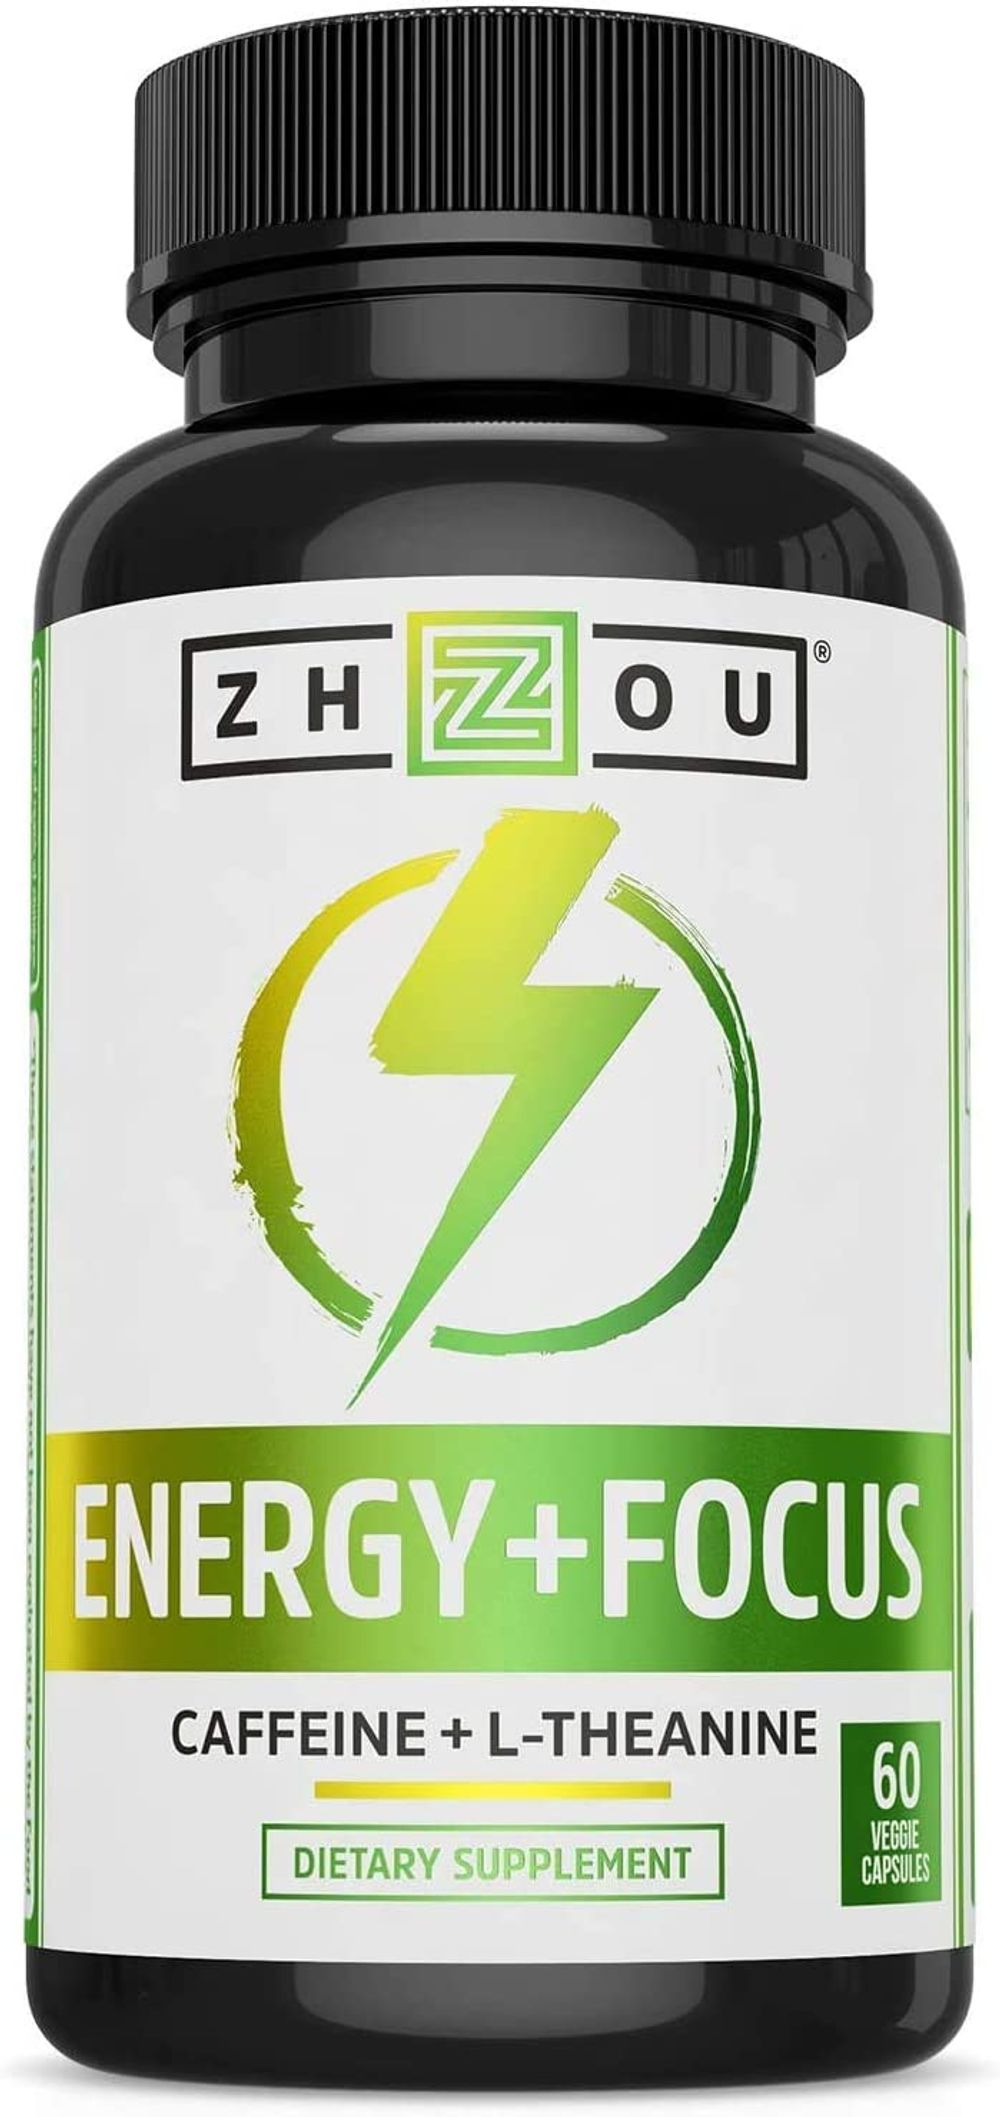 Zhou Energy + Focus   Caffeine with L-Theanine   Focused Energy for Your Mind & Body   #1 Nootropic Stack for Cognitive Performance   60 VegCaps